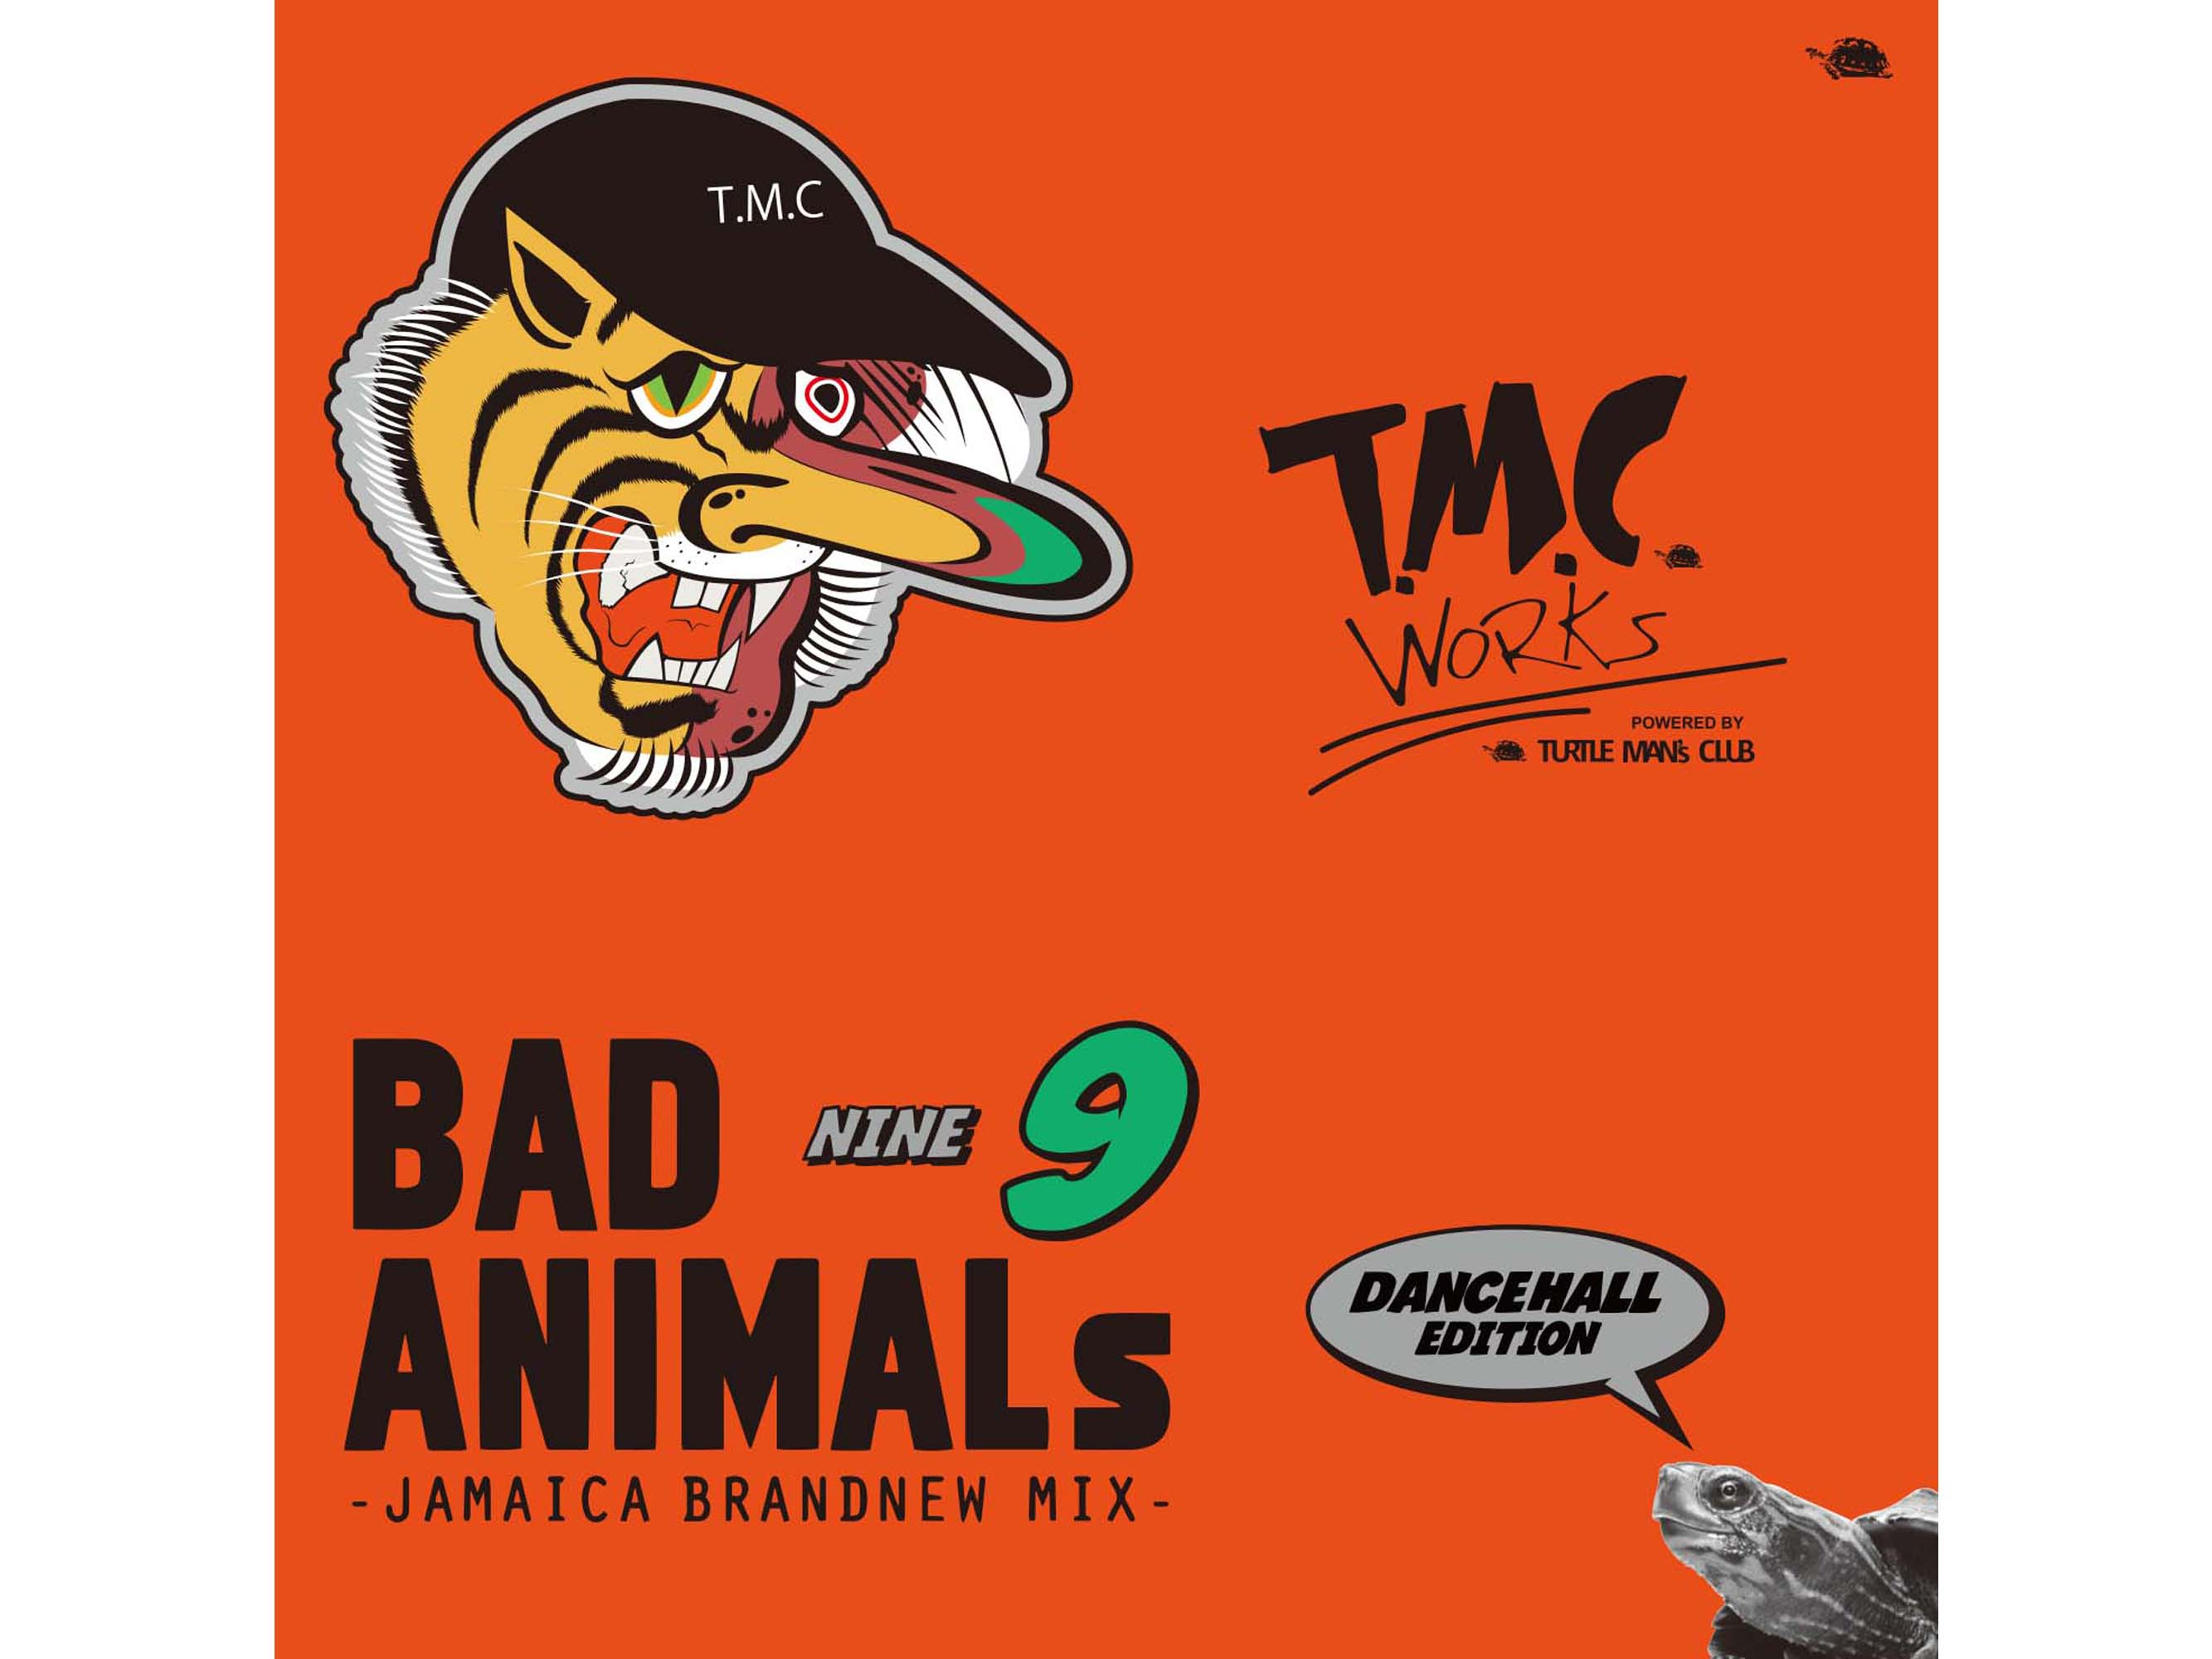 BAD ANIMALS .9 JAMAICA BRANDNEW MIX - T.M.C. WORKS